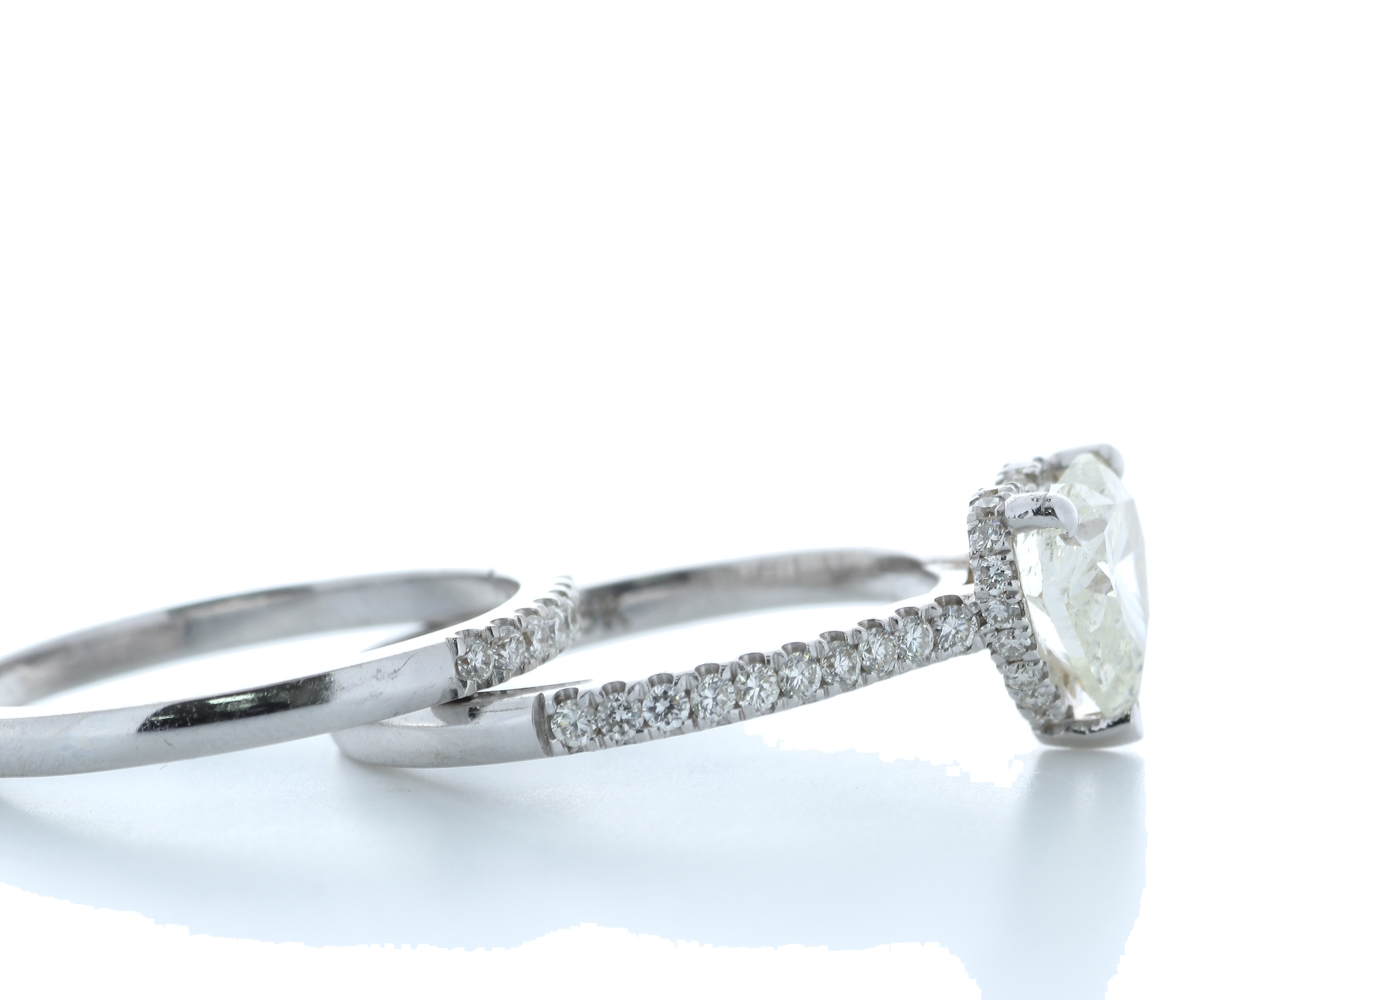 18k White Gold Heart Shape Diamond Ring With Matching Band 2.22 (1.60) Carats - Image 4 of 5